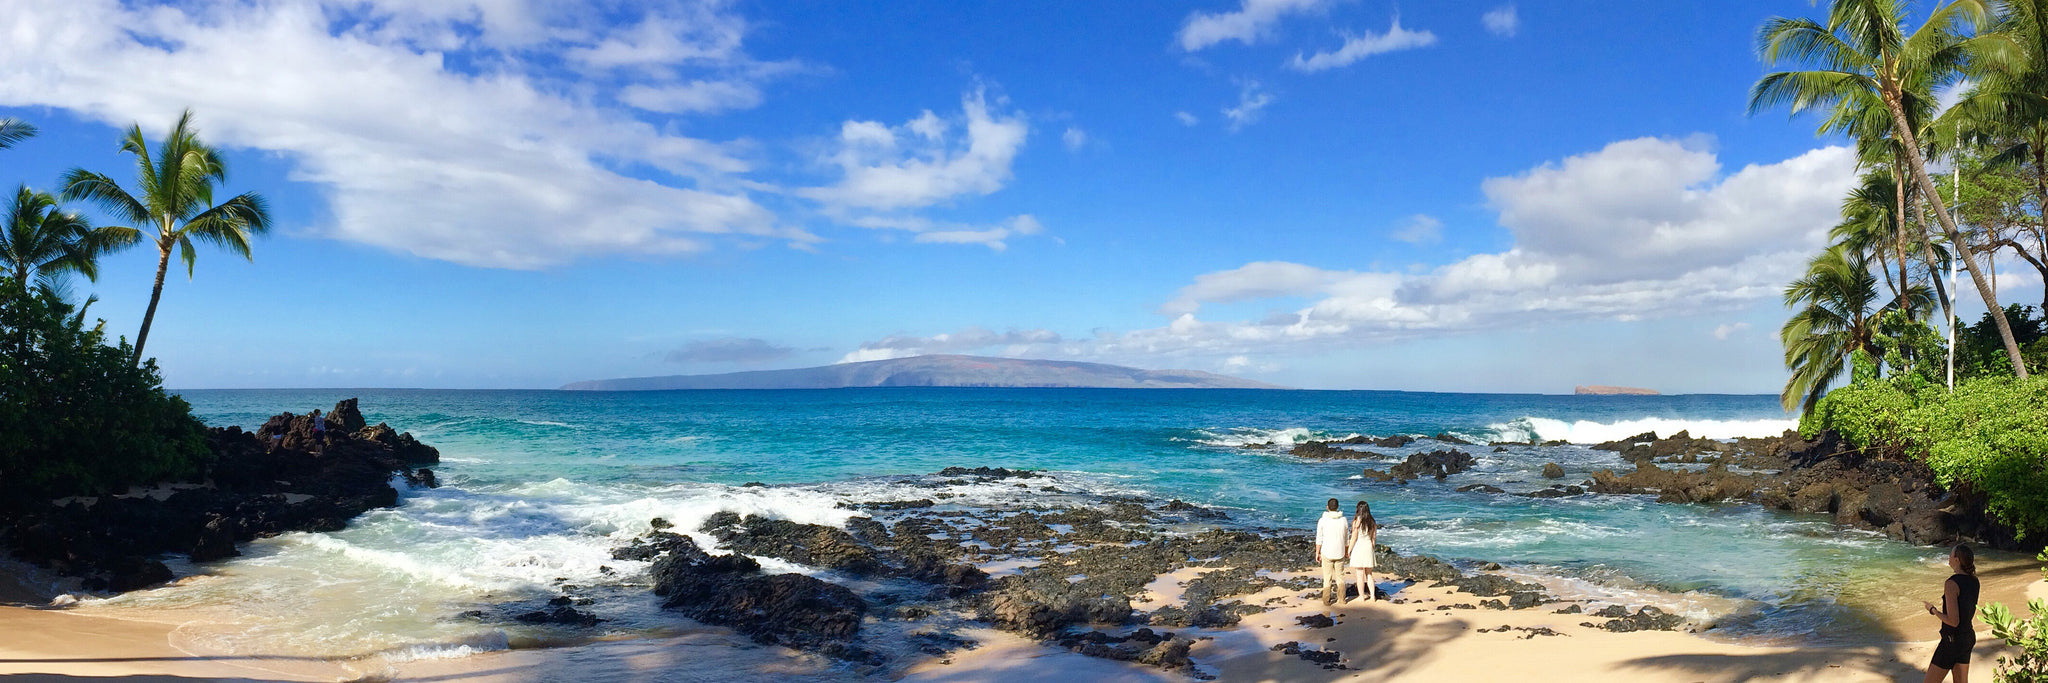 get married in maui all inclusive beach location wedding packages